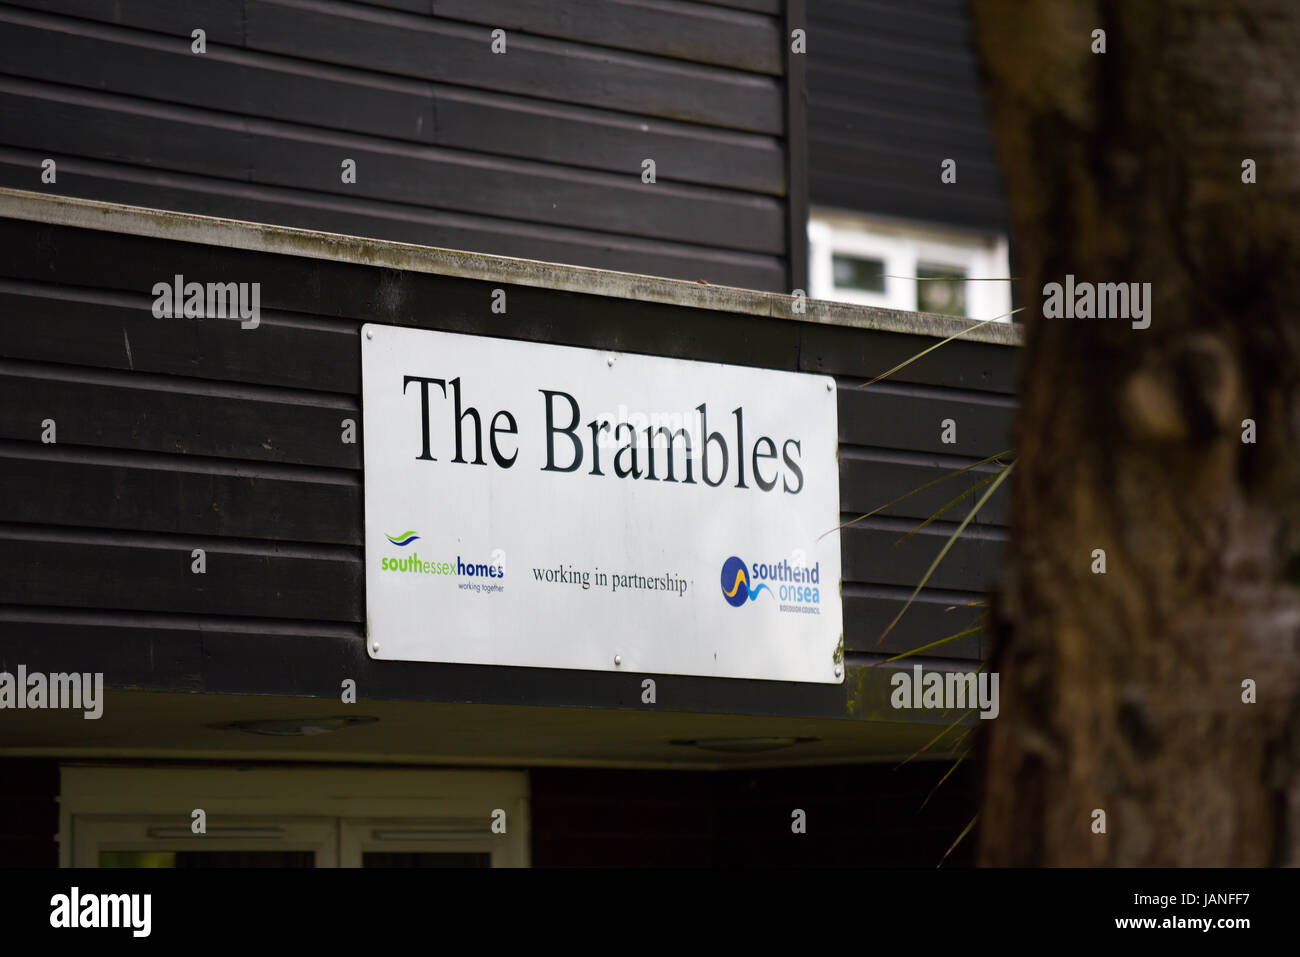 The Brambles South Essex Homes working with Southend Borough Council. Sign, with space for copy - Stock Image